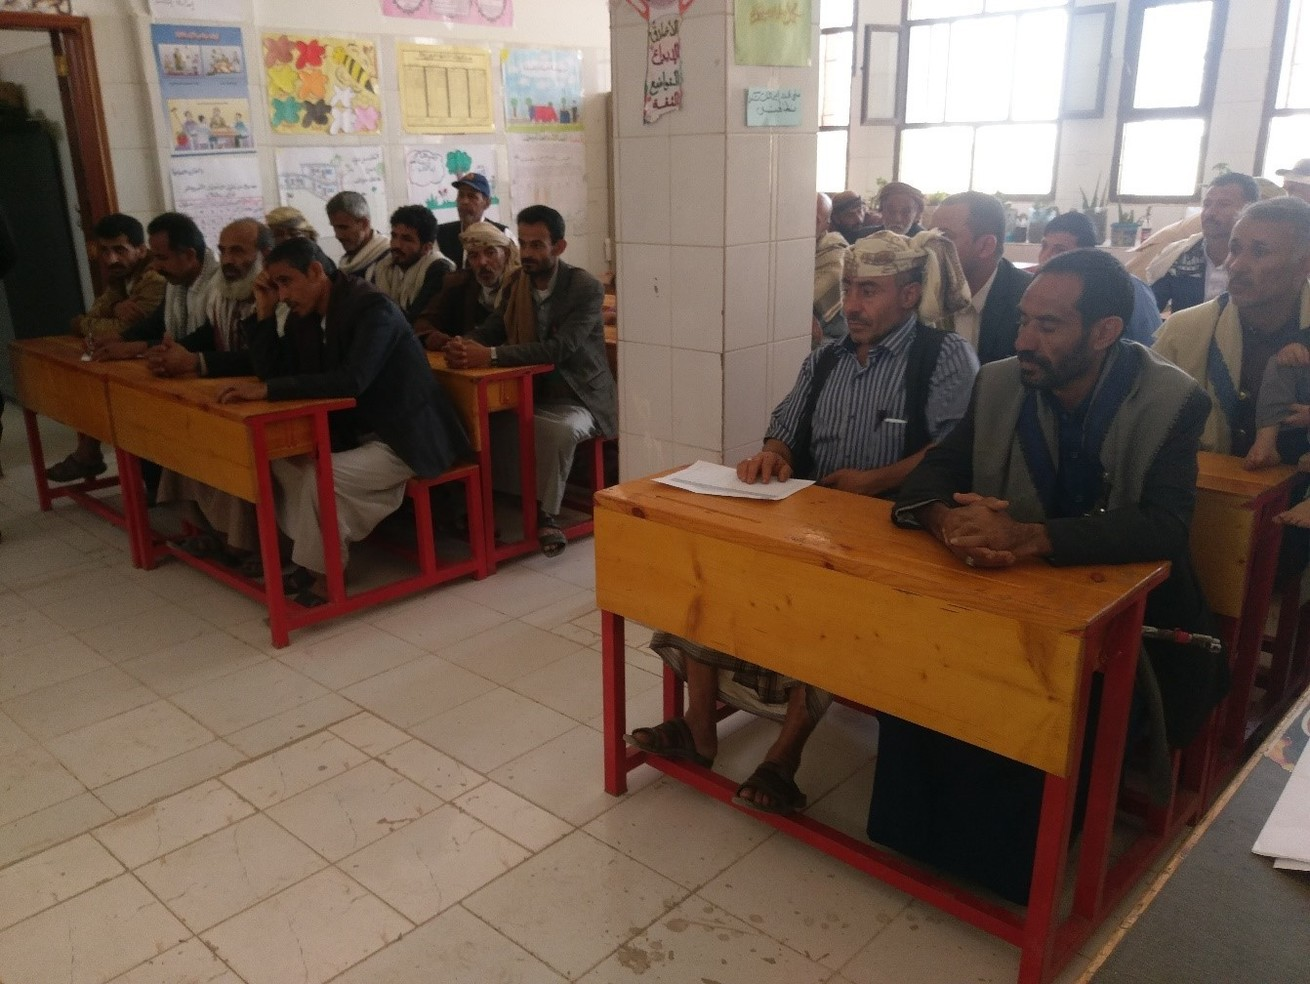 Stakeholders discuss educational change during a dialogue session at Al-Hareth school